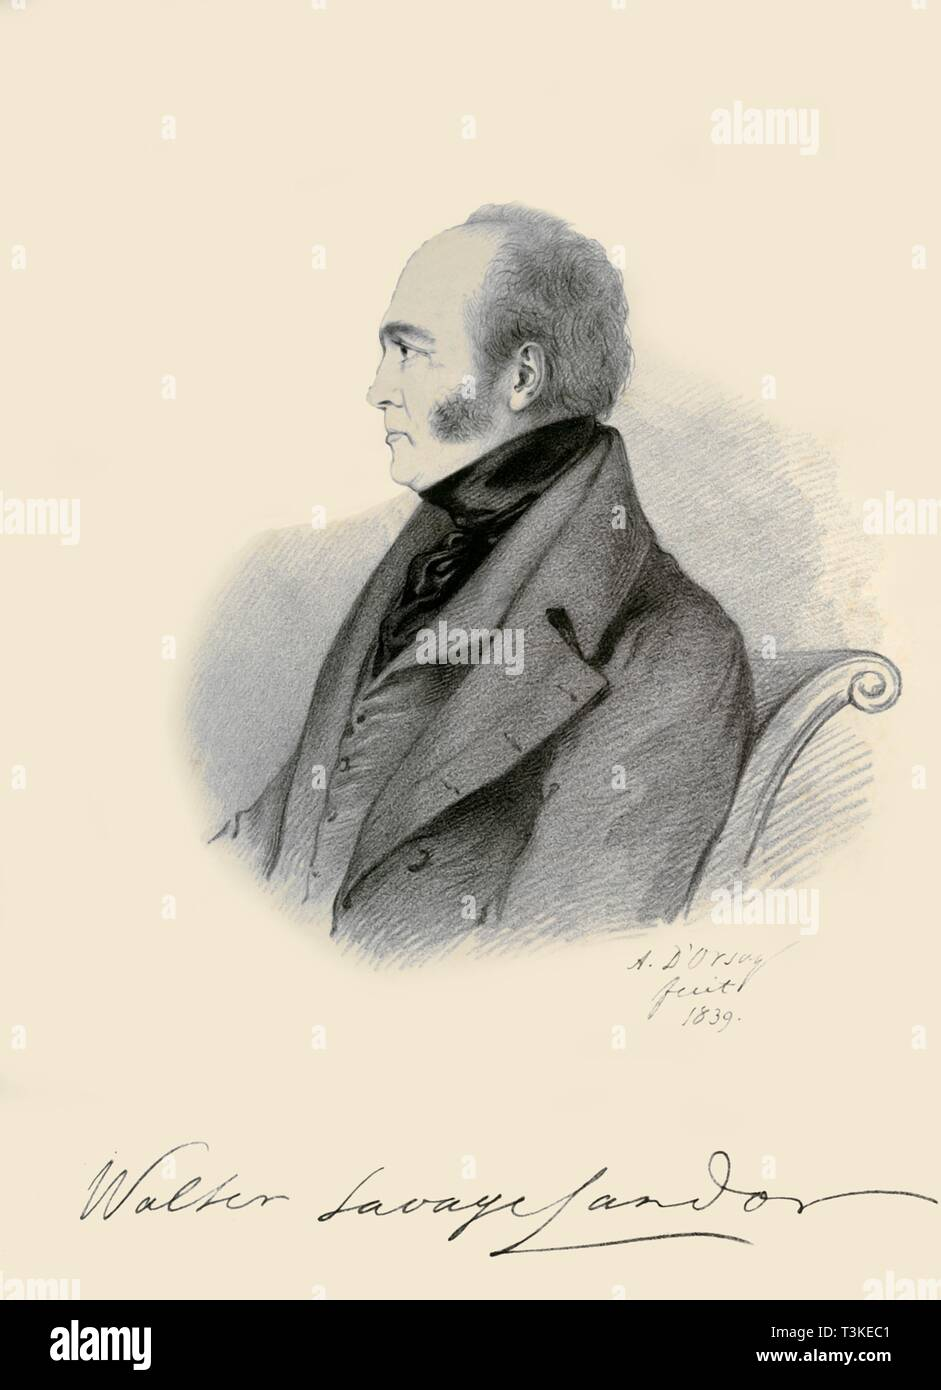 """'Walter Savage Landor', 1839. Portrait of British writer, poet, and activist Walter Savage Landor (1775-1864). From """"Portraits by Count D'Orsay"""", an album assembled by Lady Georgiana Codrington. [1850s] - Stock Image"""